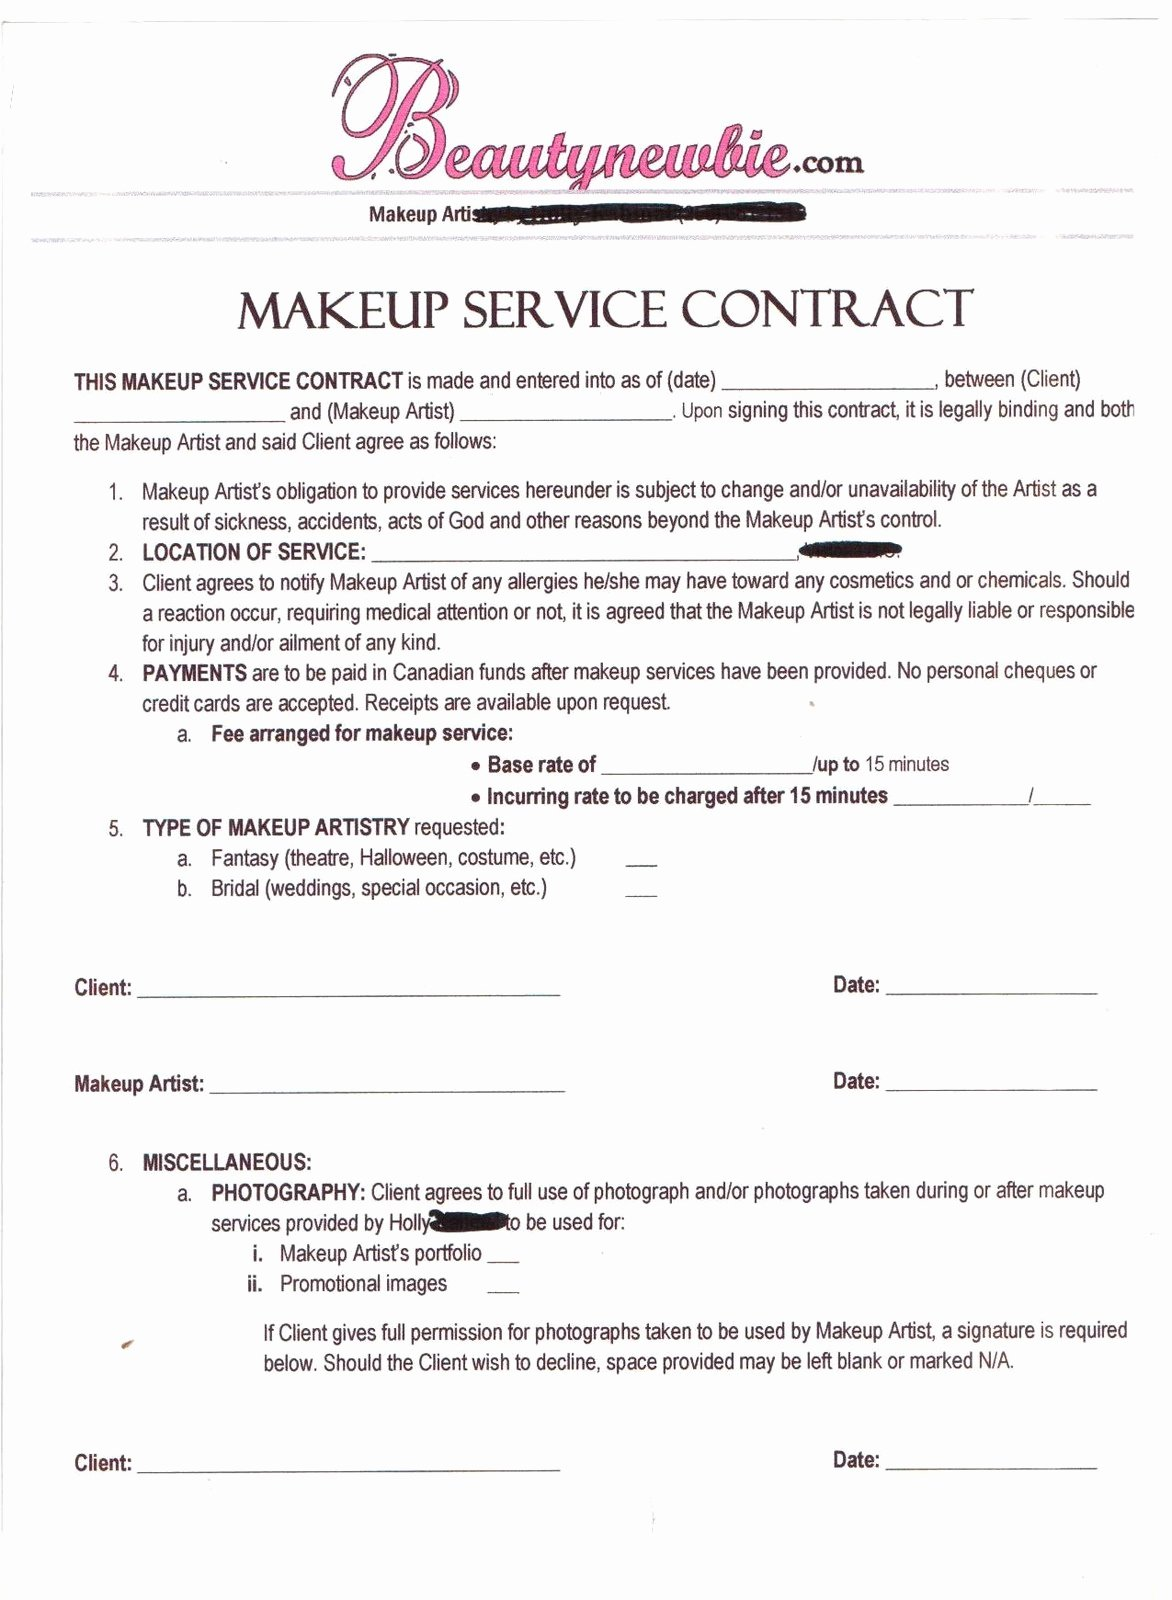 Freelance Makeup Artist Contracts Fresh Freelance Makeup Artist Contract Template